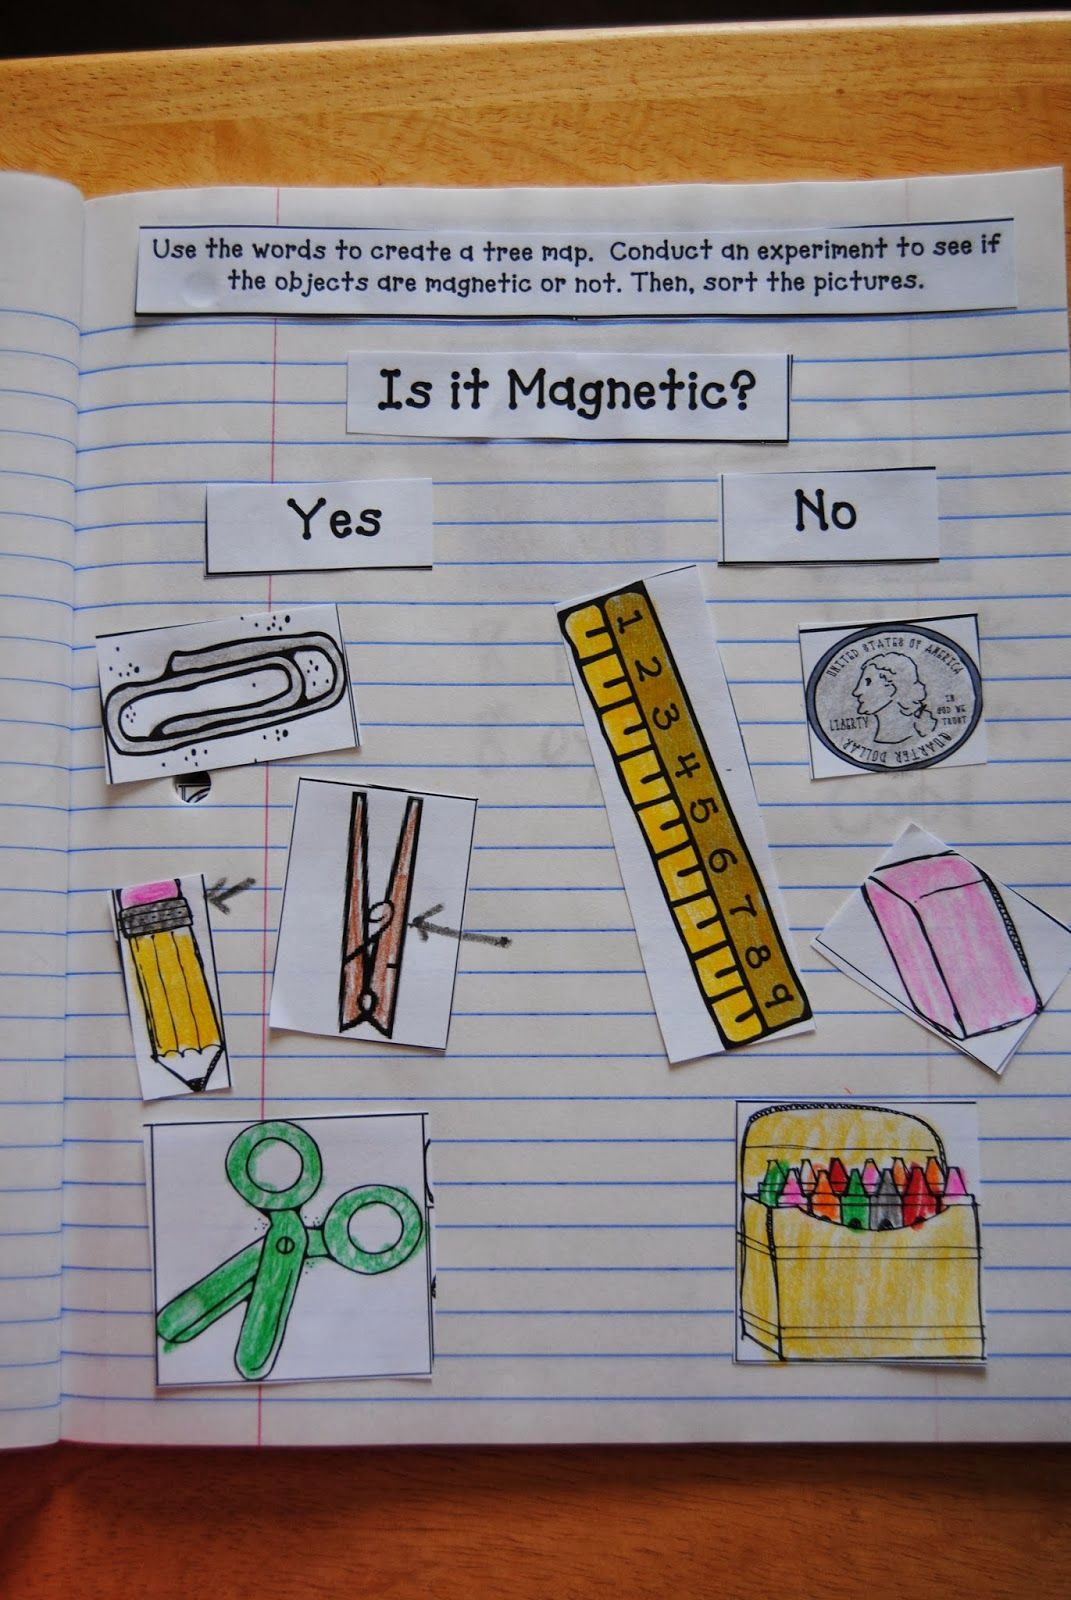 Get This Free Magnet Worksheet To Use When You Test The